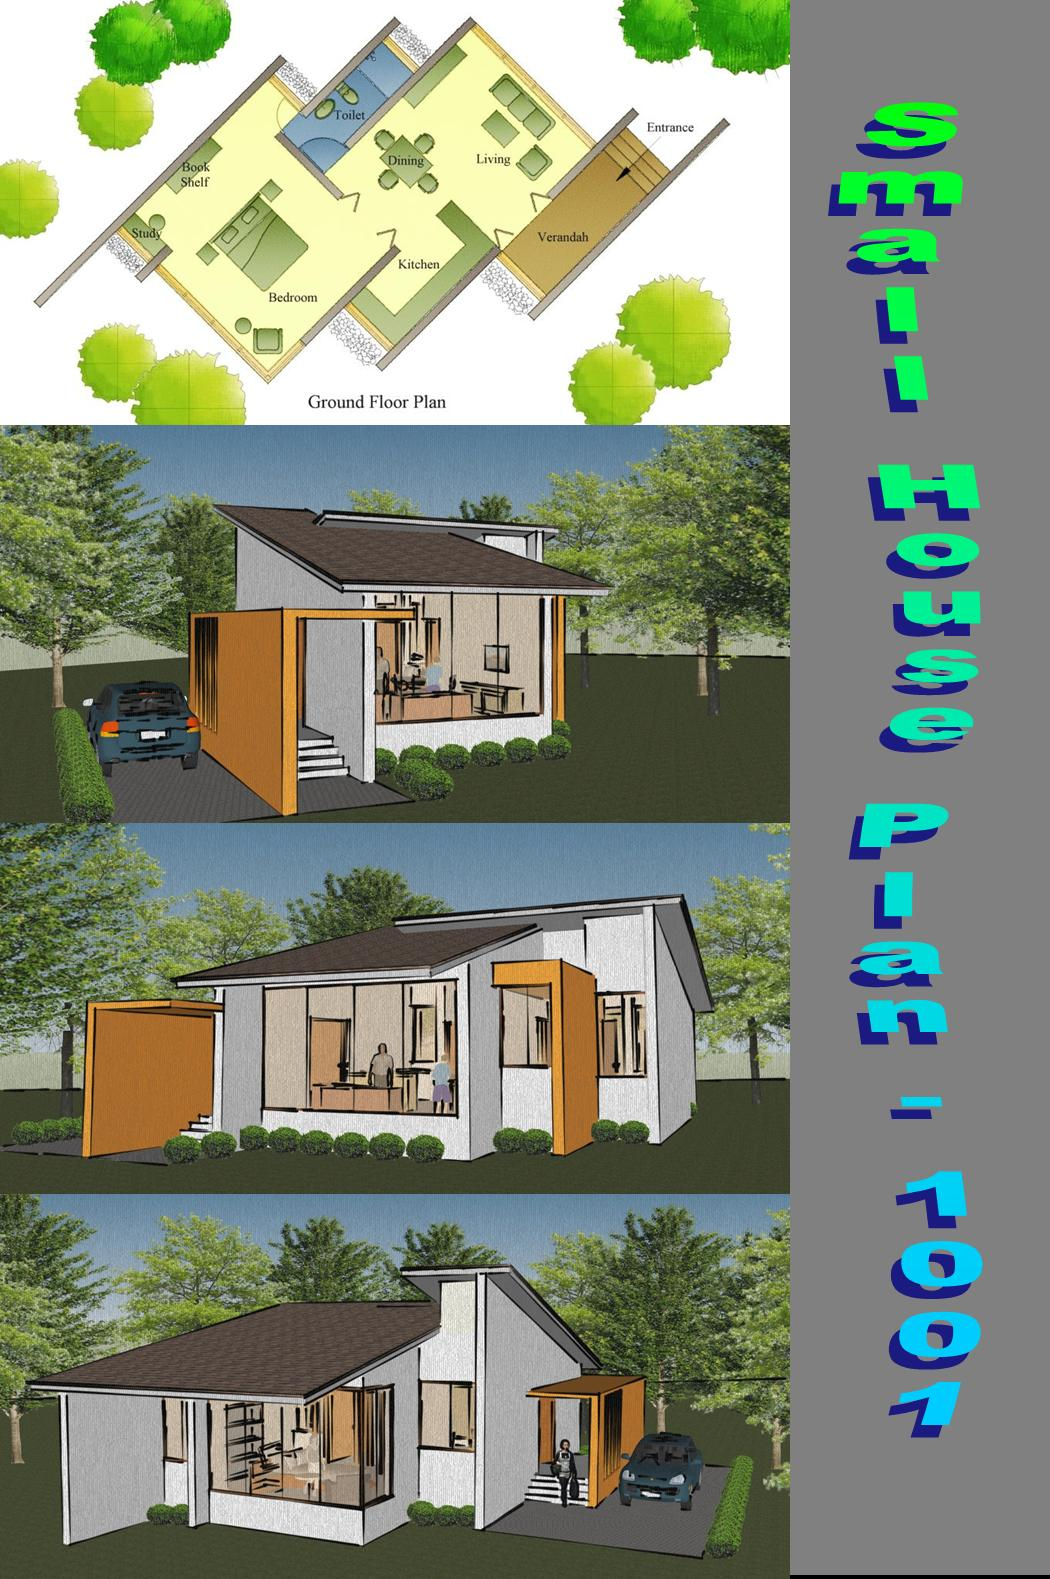 Home plans in india 5 best small home plans from for Top house plan designers